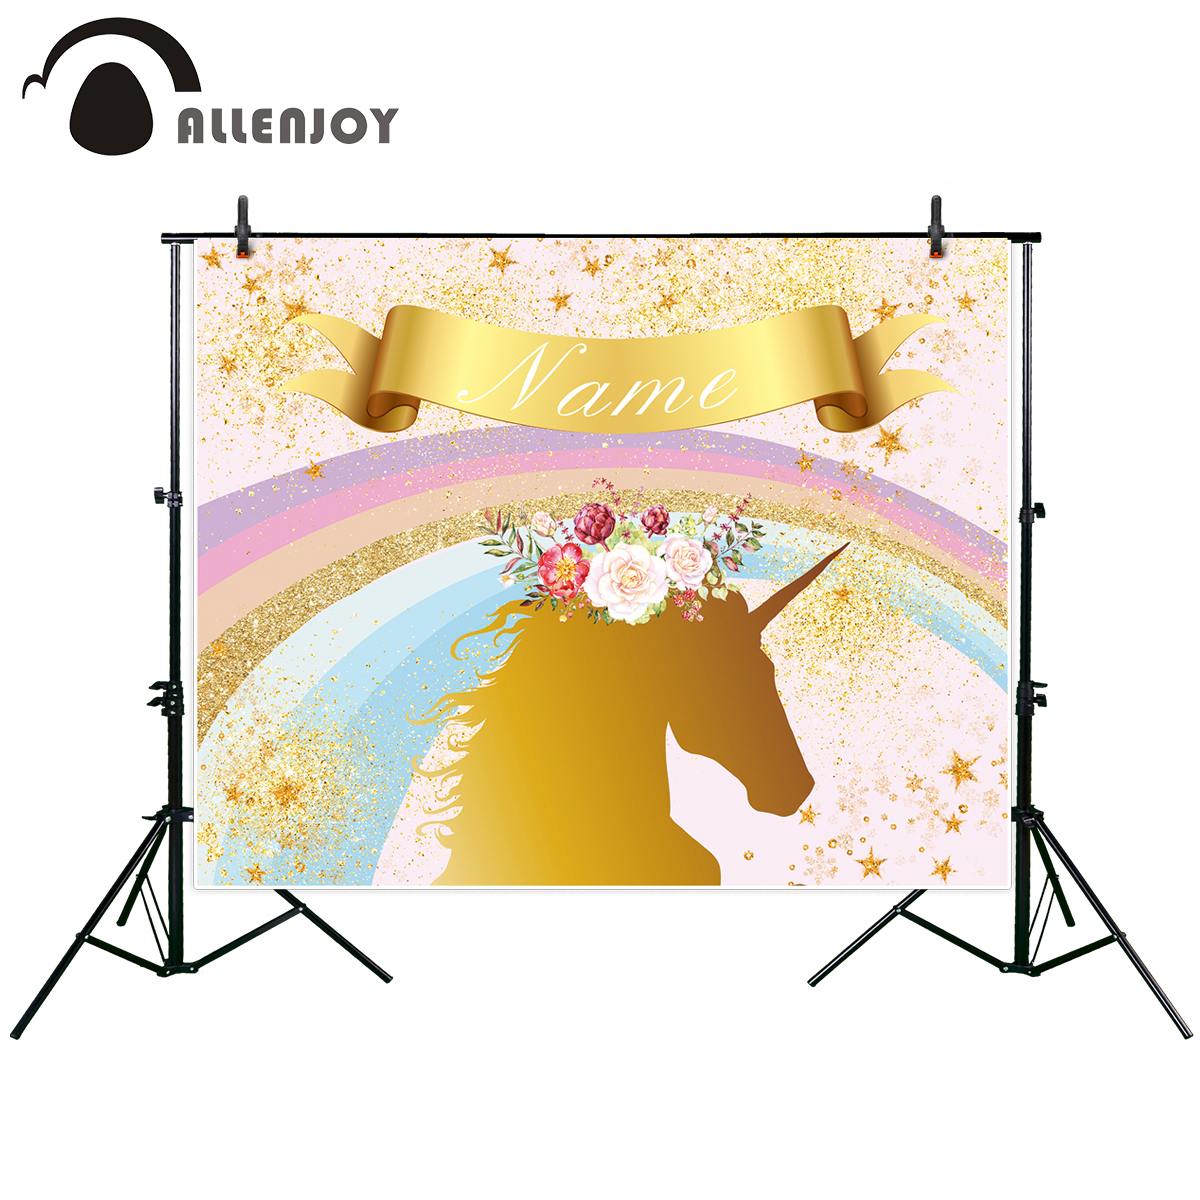 Allenjoy photographic background Golden Rainbow Unicorn Children Flowers Birthday photo studio photocall family party backdrop 1 roll 10m clear nail double side nail adhesive tape strips tips transparent manicure nail art tool